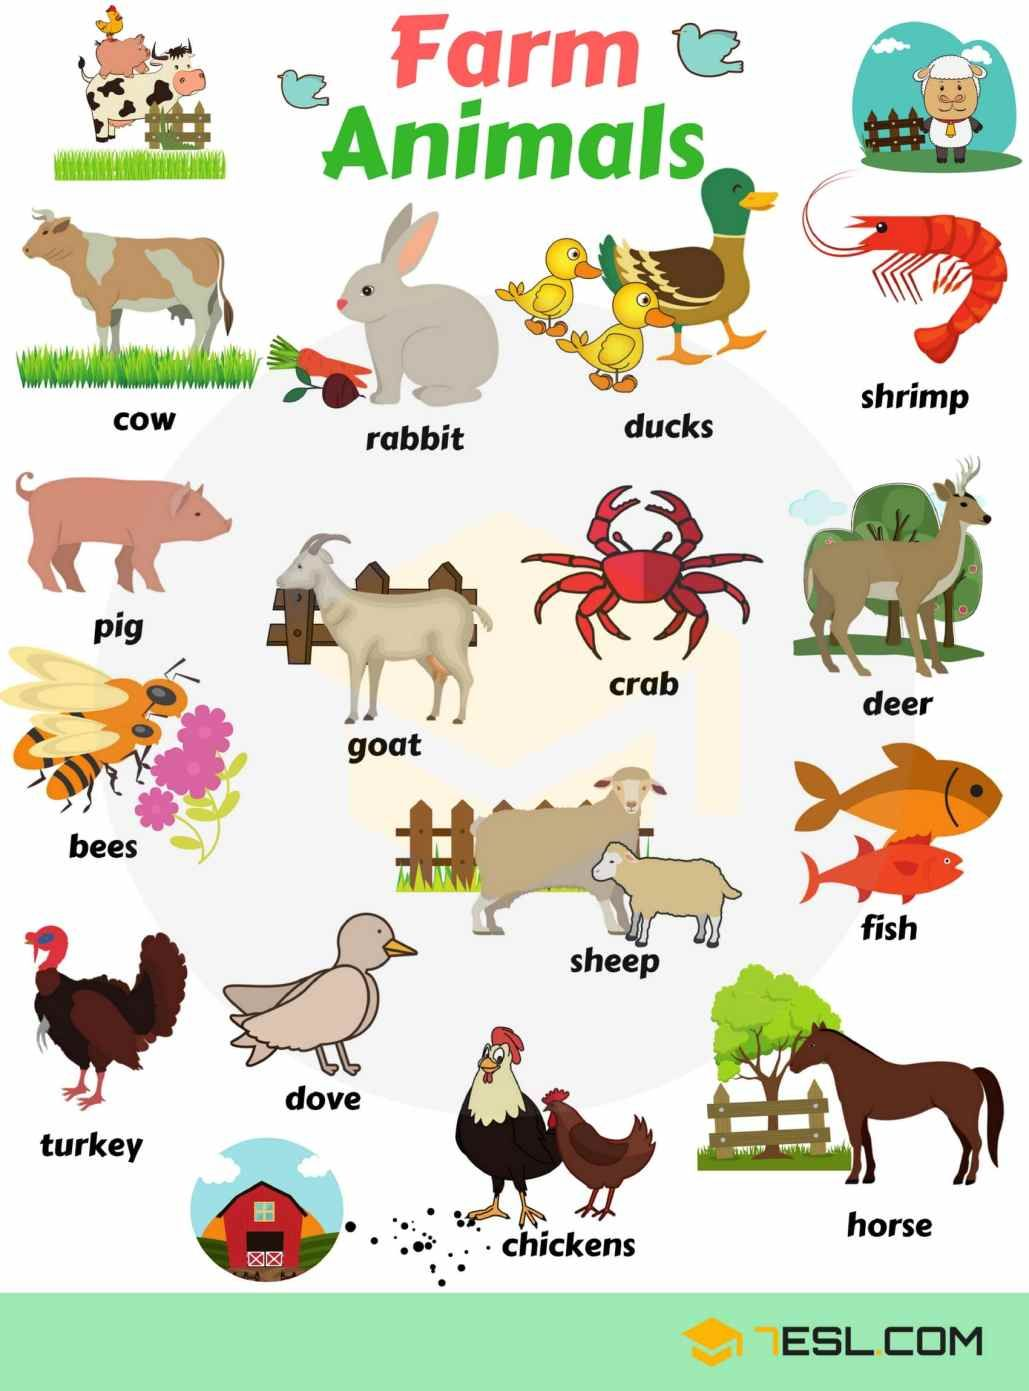 Learn Animal Names in English English vocabulary